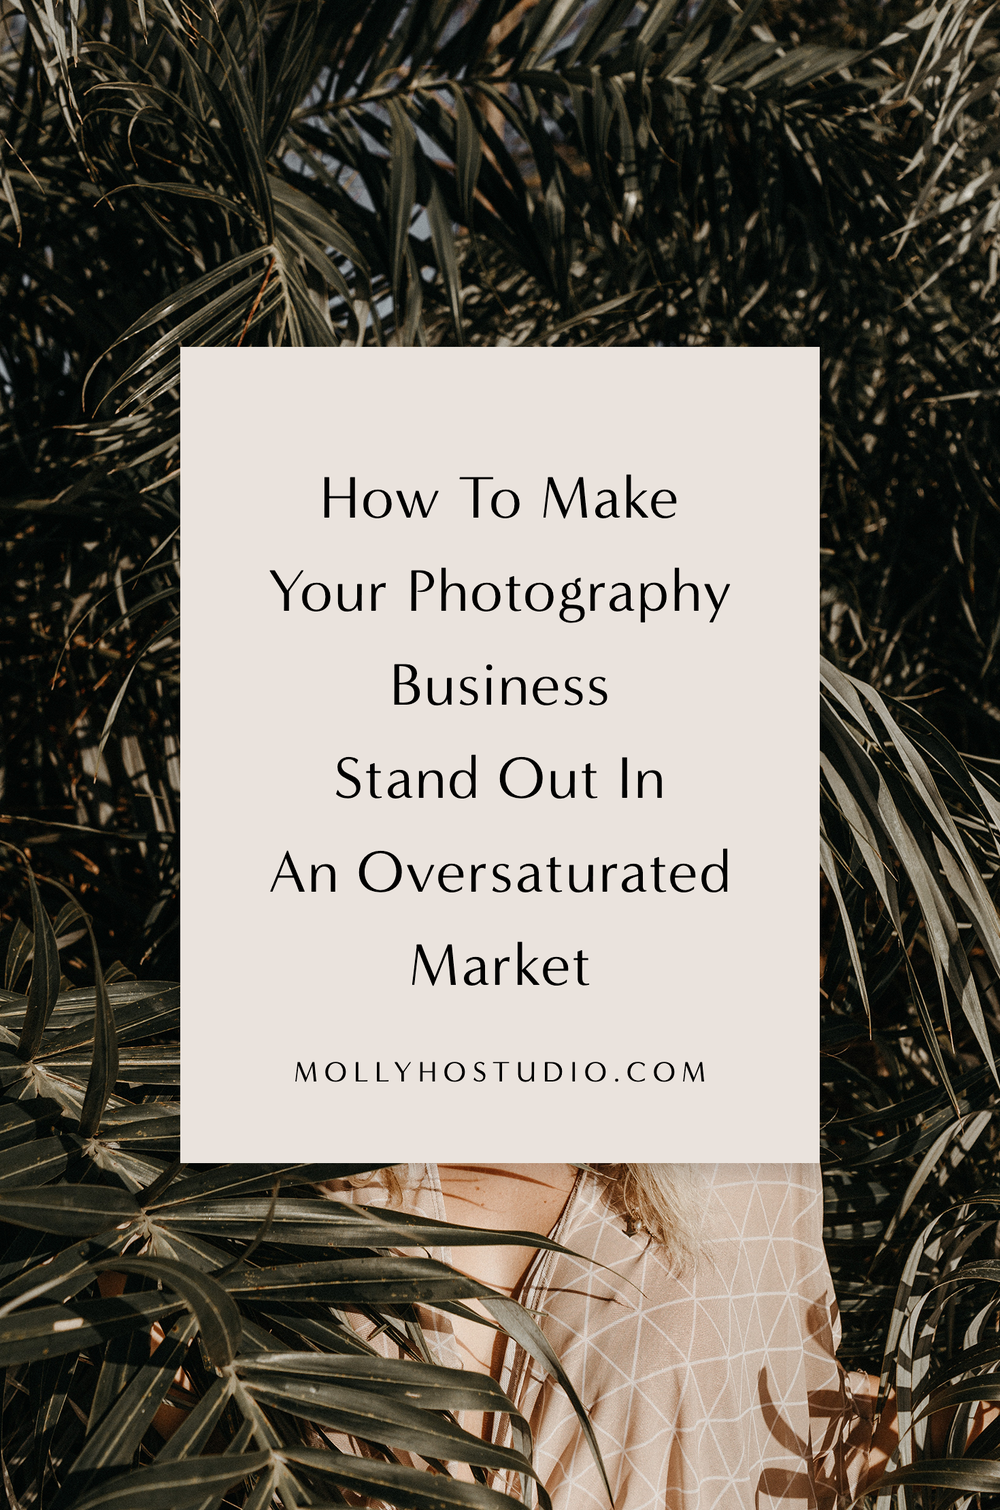 How To Make Your Photography Business Stand Out In An Oversaturated Market | How To Market Yourself As A Photographer | Branding and Marketing Tips for Photographers | Creating A Personal Brand | Growing Your Photography Business | Getting More Photography Clients | Creating Your Unique Selling Point | Molly Ho Studio